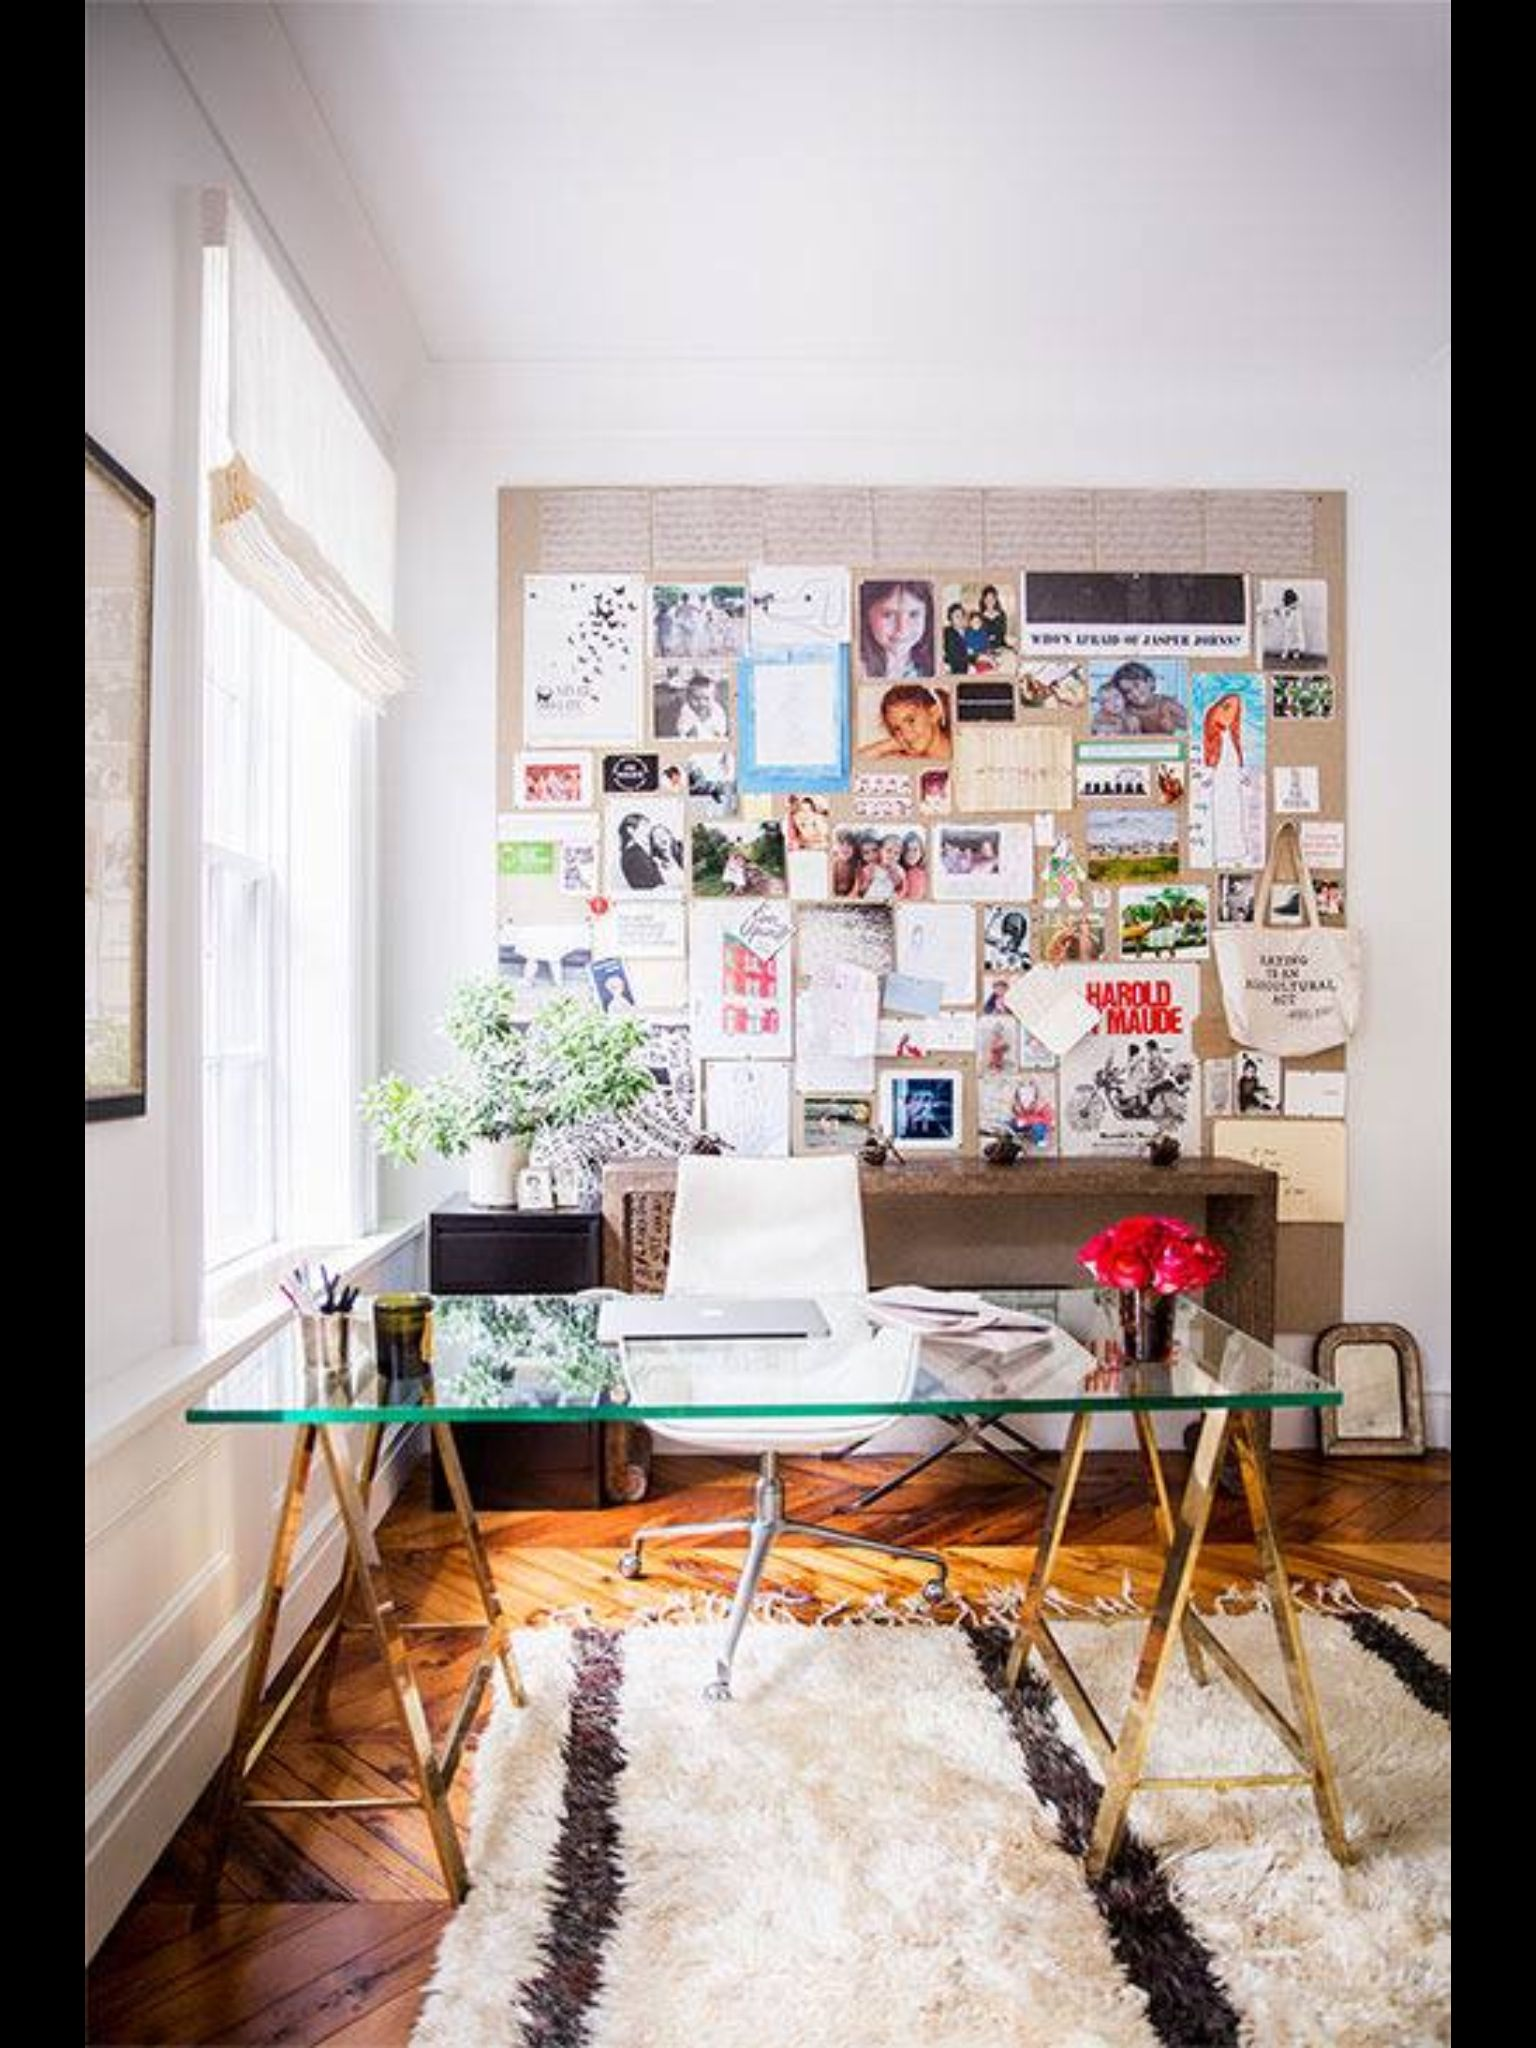 Mood board | #office | Pinterest | Mood boards, Board and Spaces